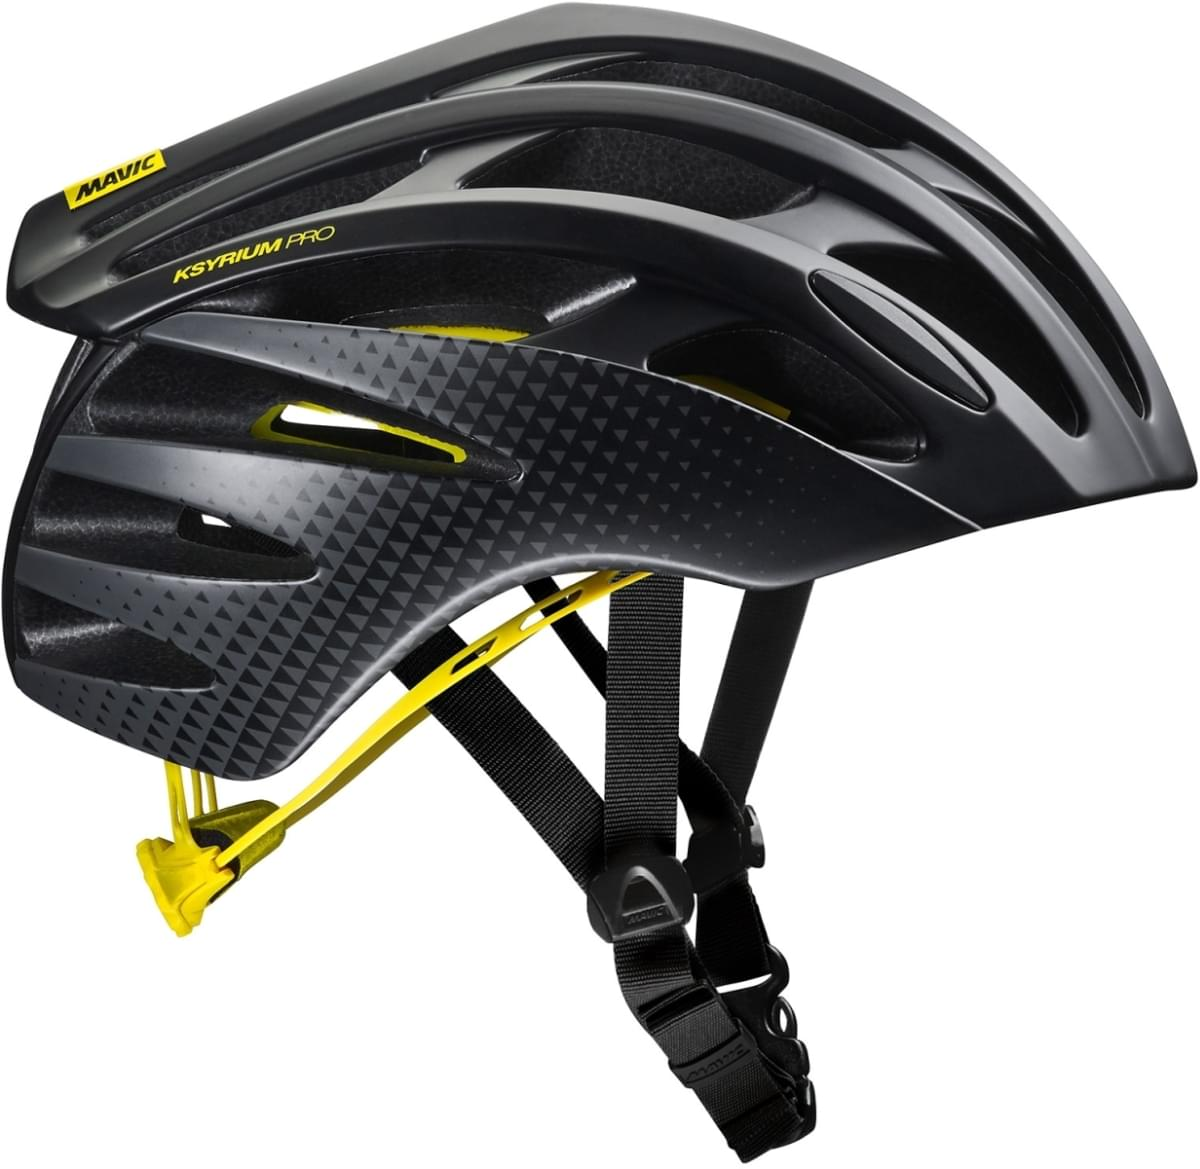 Mavic Ksyrium Pro Mips Helmet - black/yellow mavic L